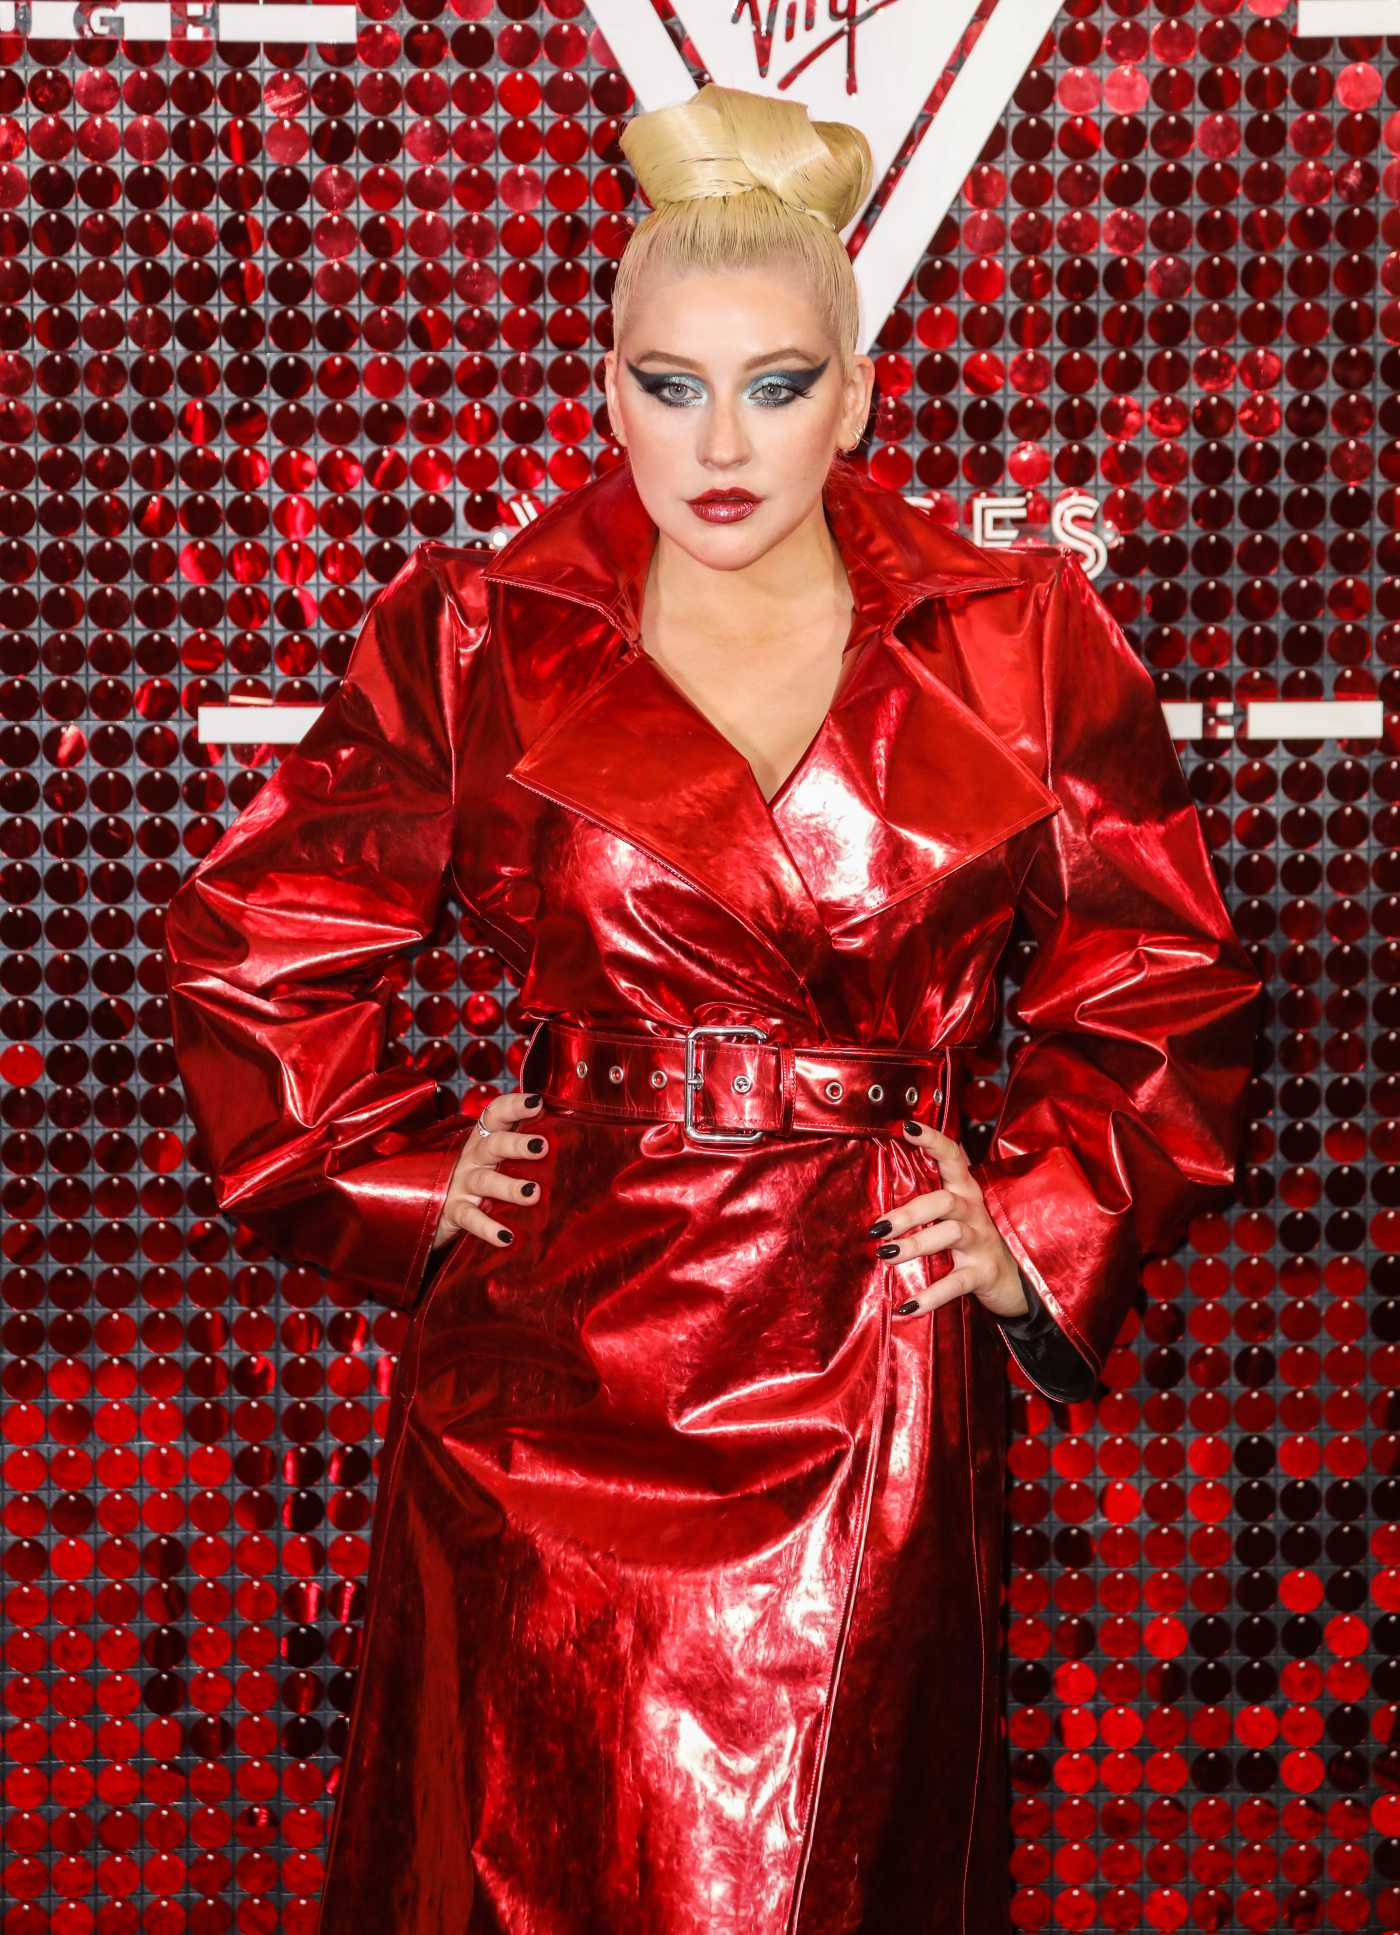 Christina Aguilera Attends the Virgin Voyages x Gareth Pugh Event at the Royal Opera House in London 09/15/2019